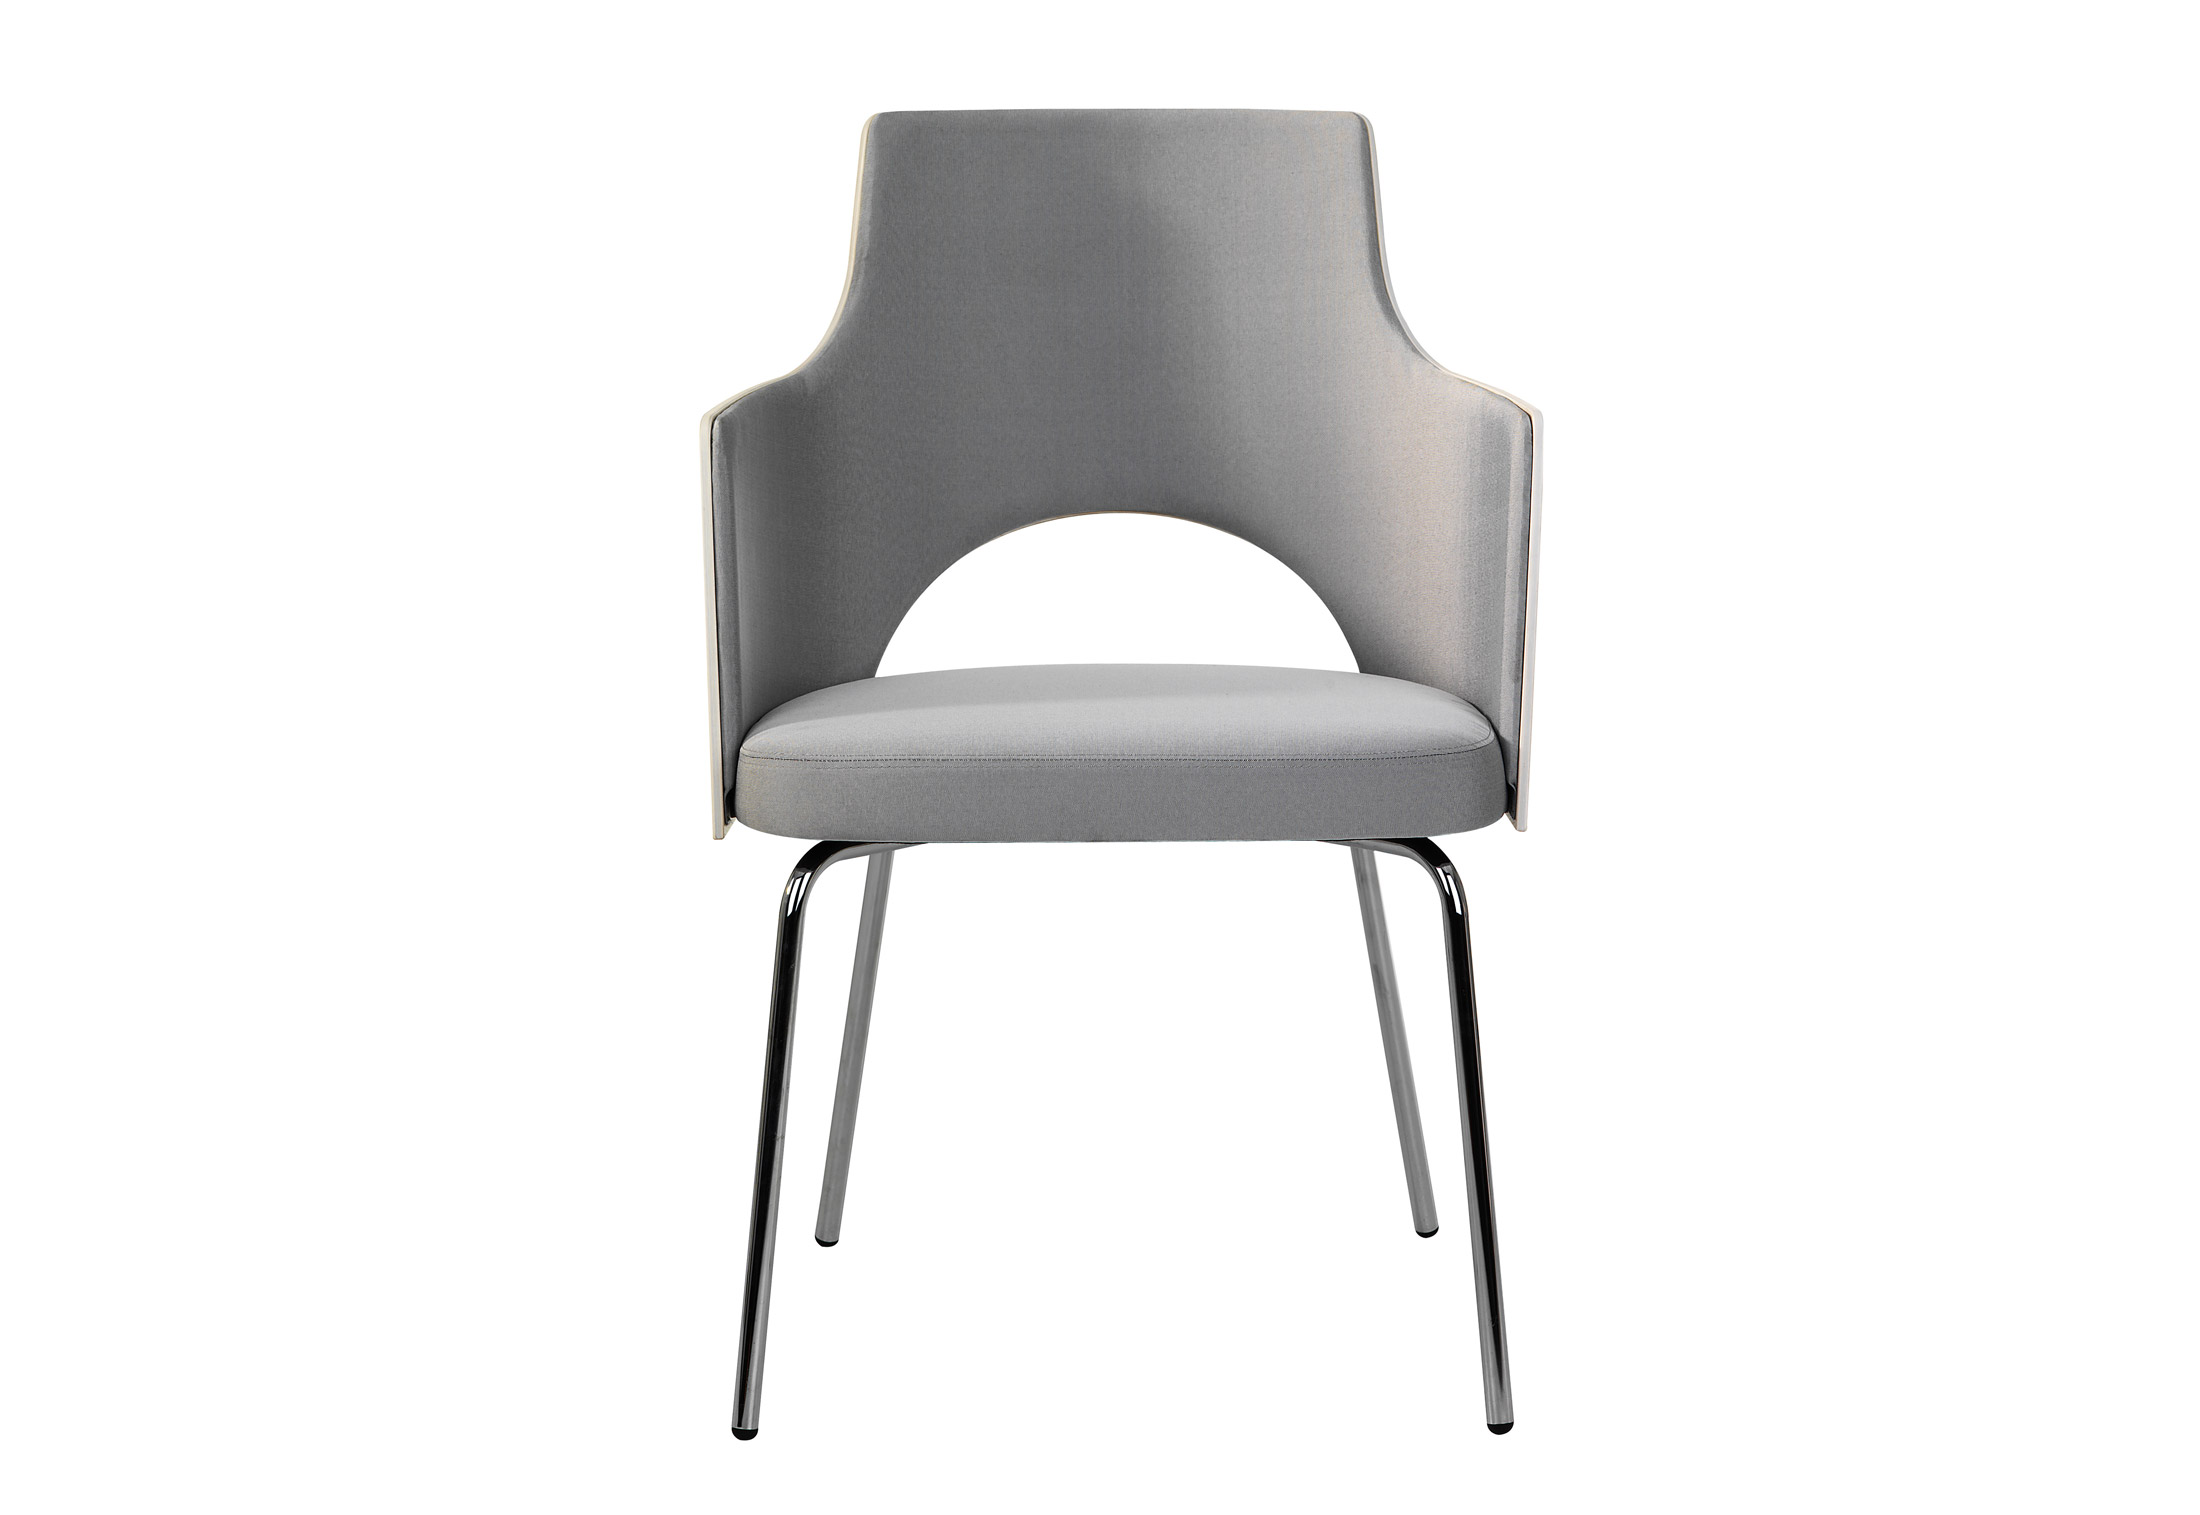 Cortina armchair by Lammhults | STYLEPARK